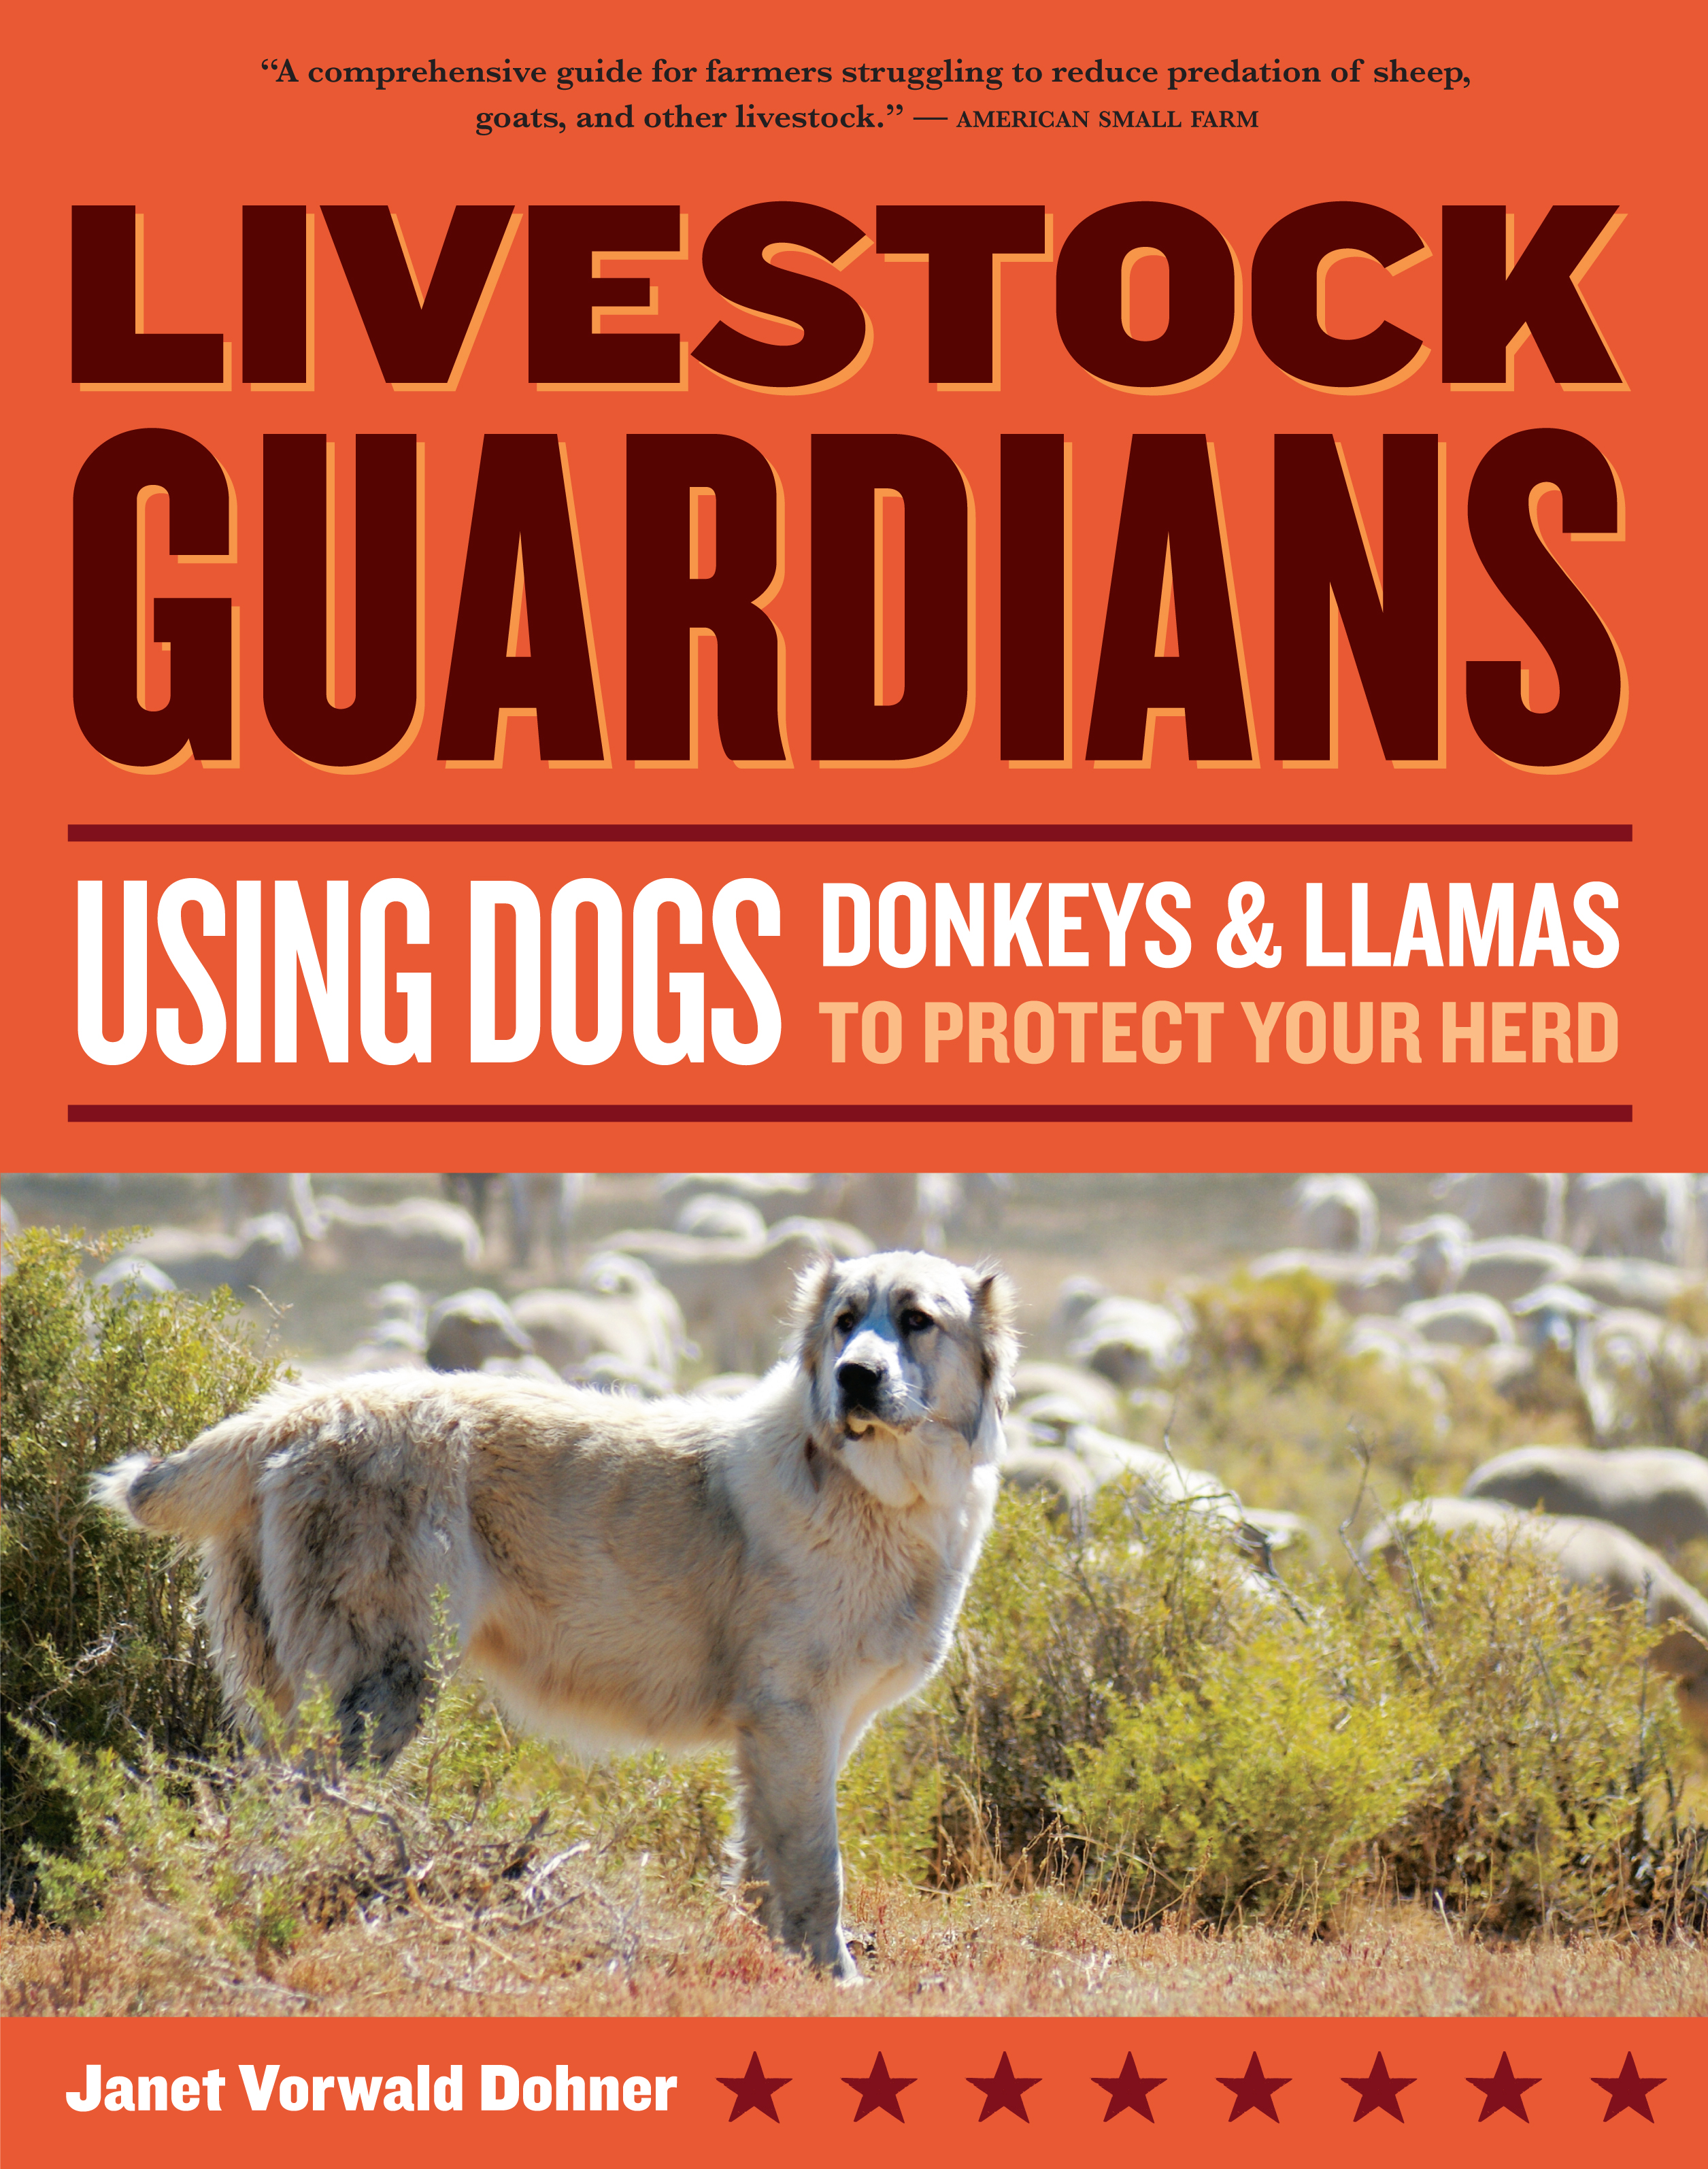 Livestock Guardians Using Dogs, Donkeys, and Llamas to Protect Your Herd - Janet Vorwald Dohner